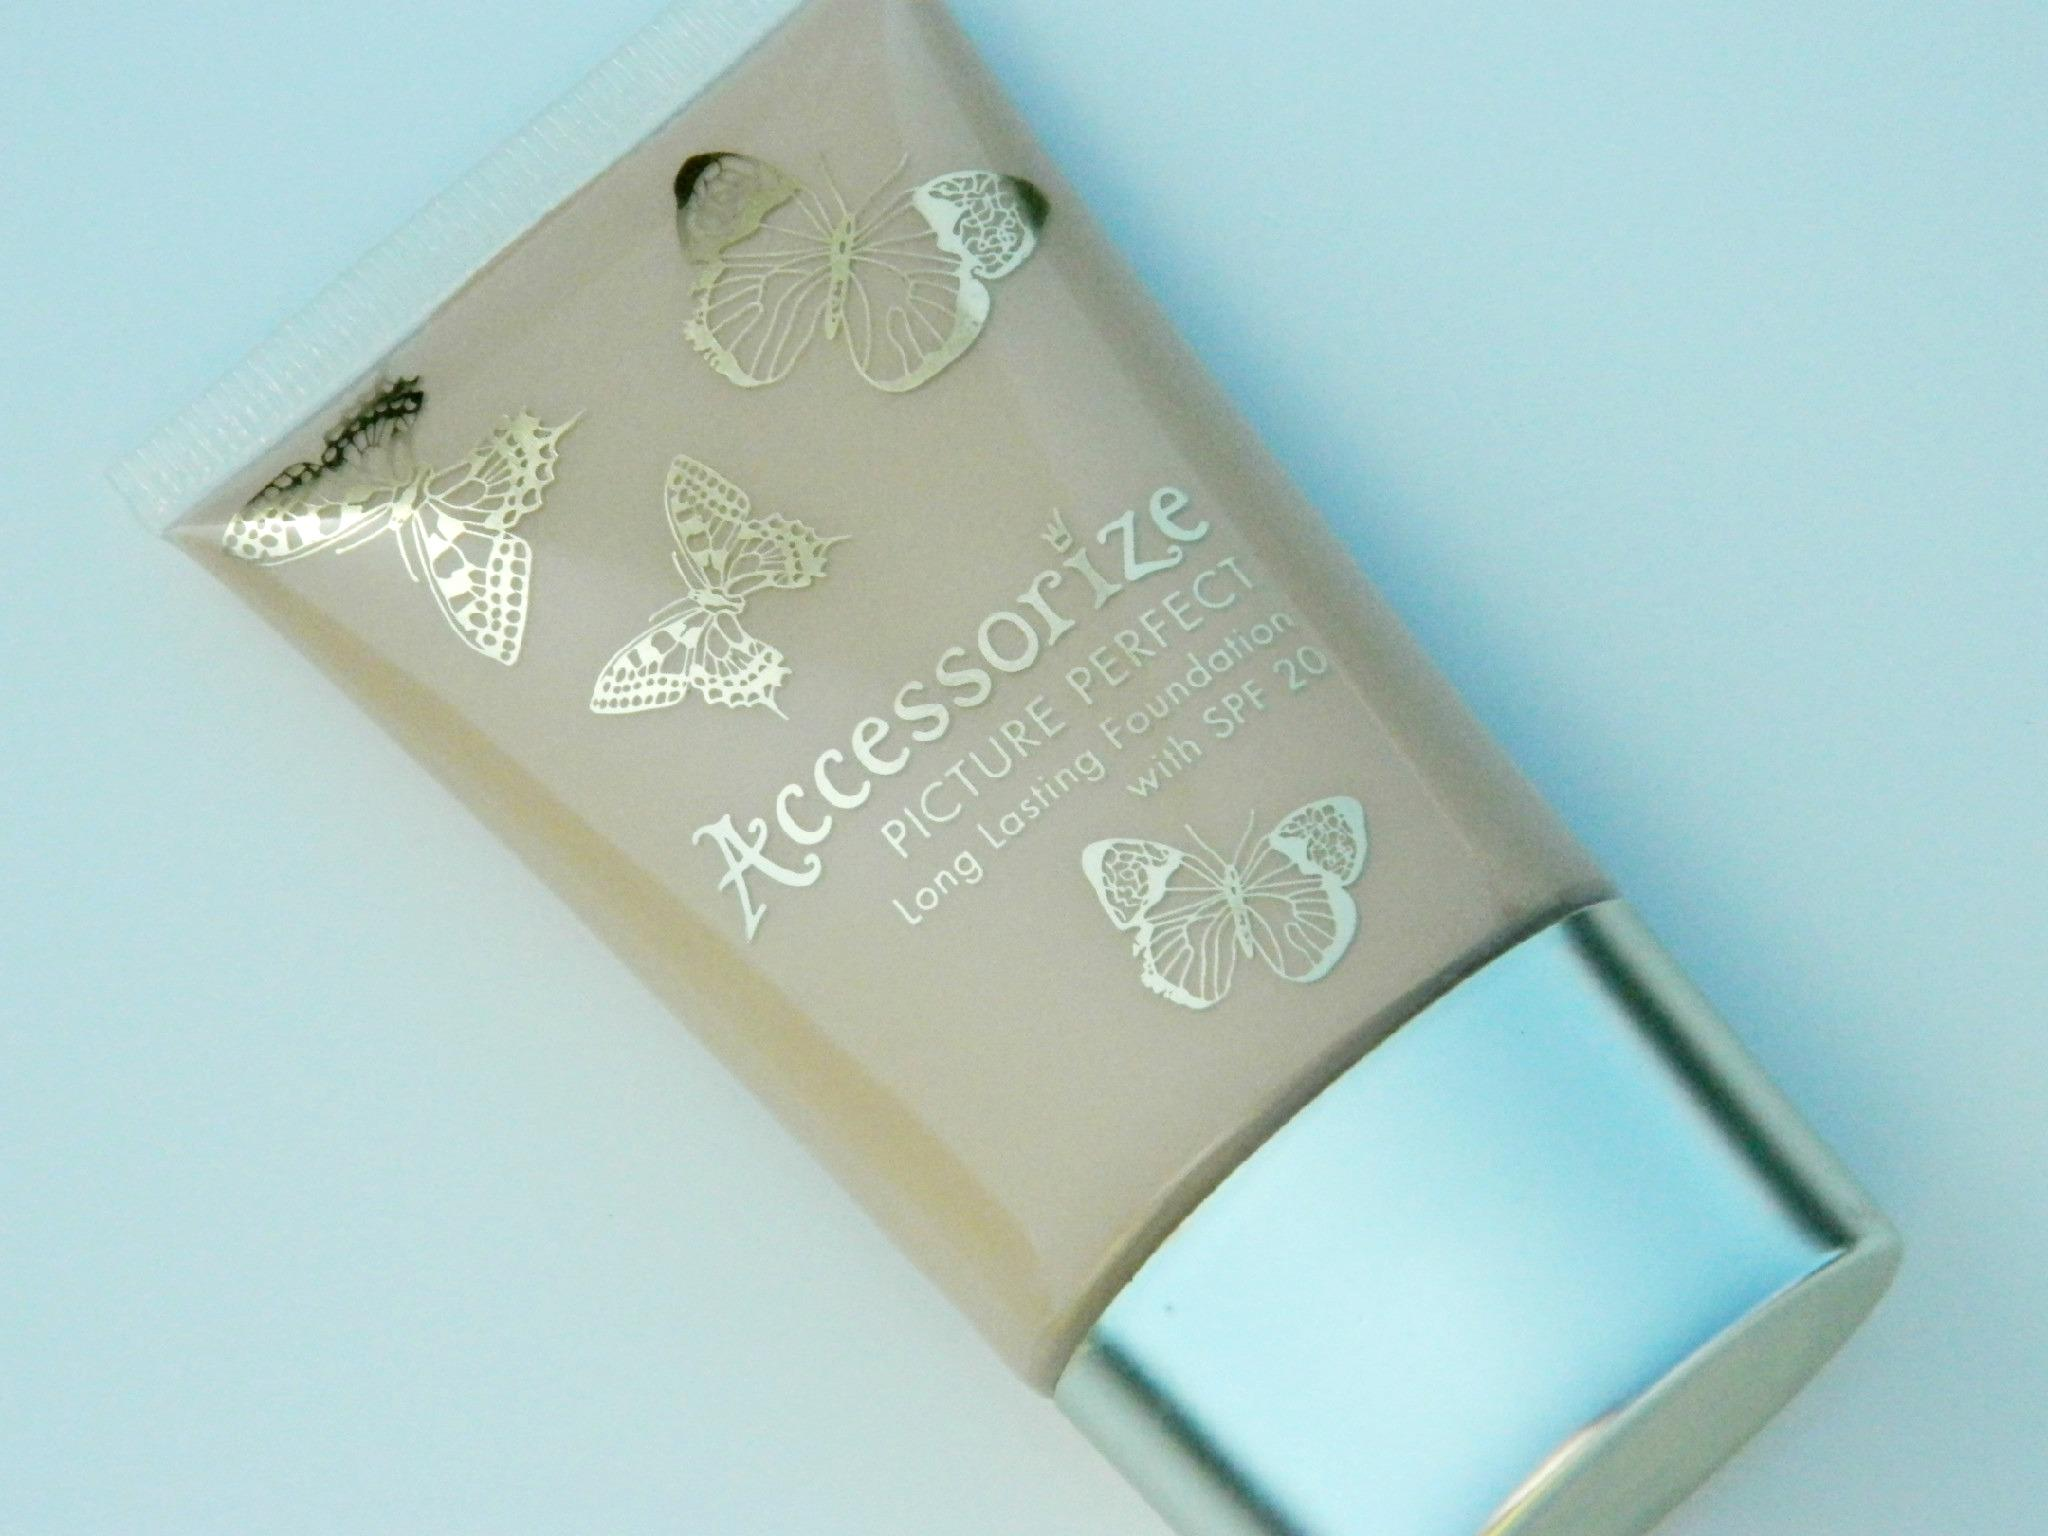 Accessorize Picture Perfect Long Lasting Foundation with SPF 20 Review